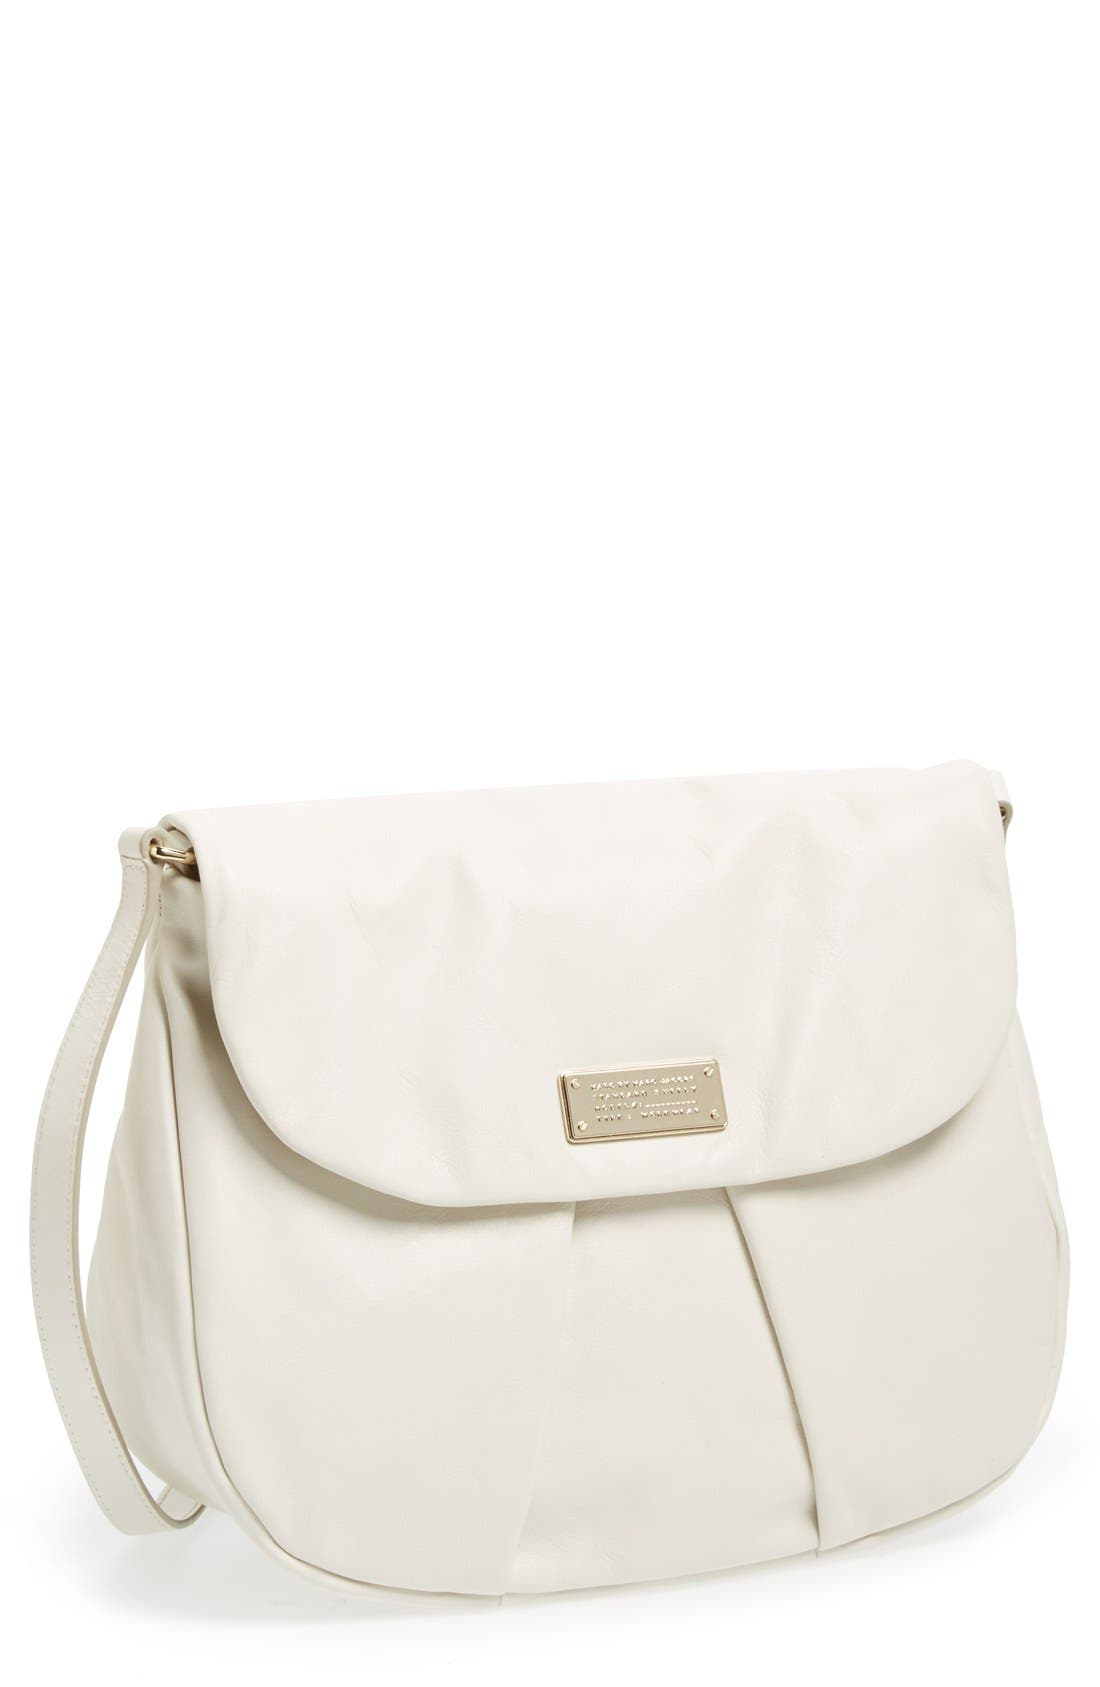 Alternate Image 1 Selected - MARC BY MARC JACOBS 'Machive' Crossbody Bag